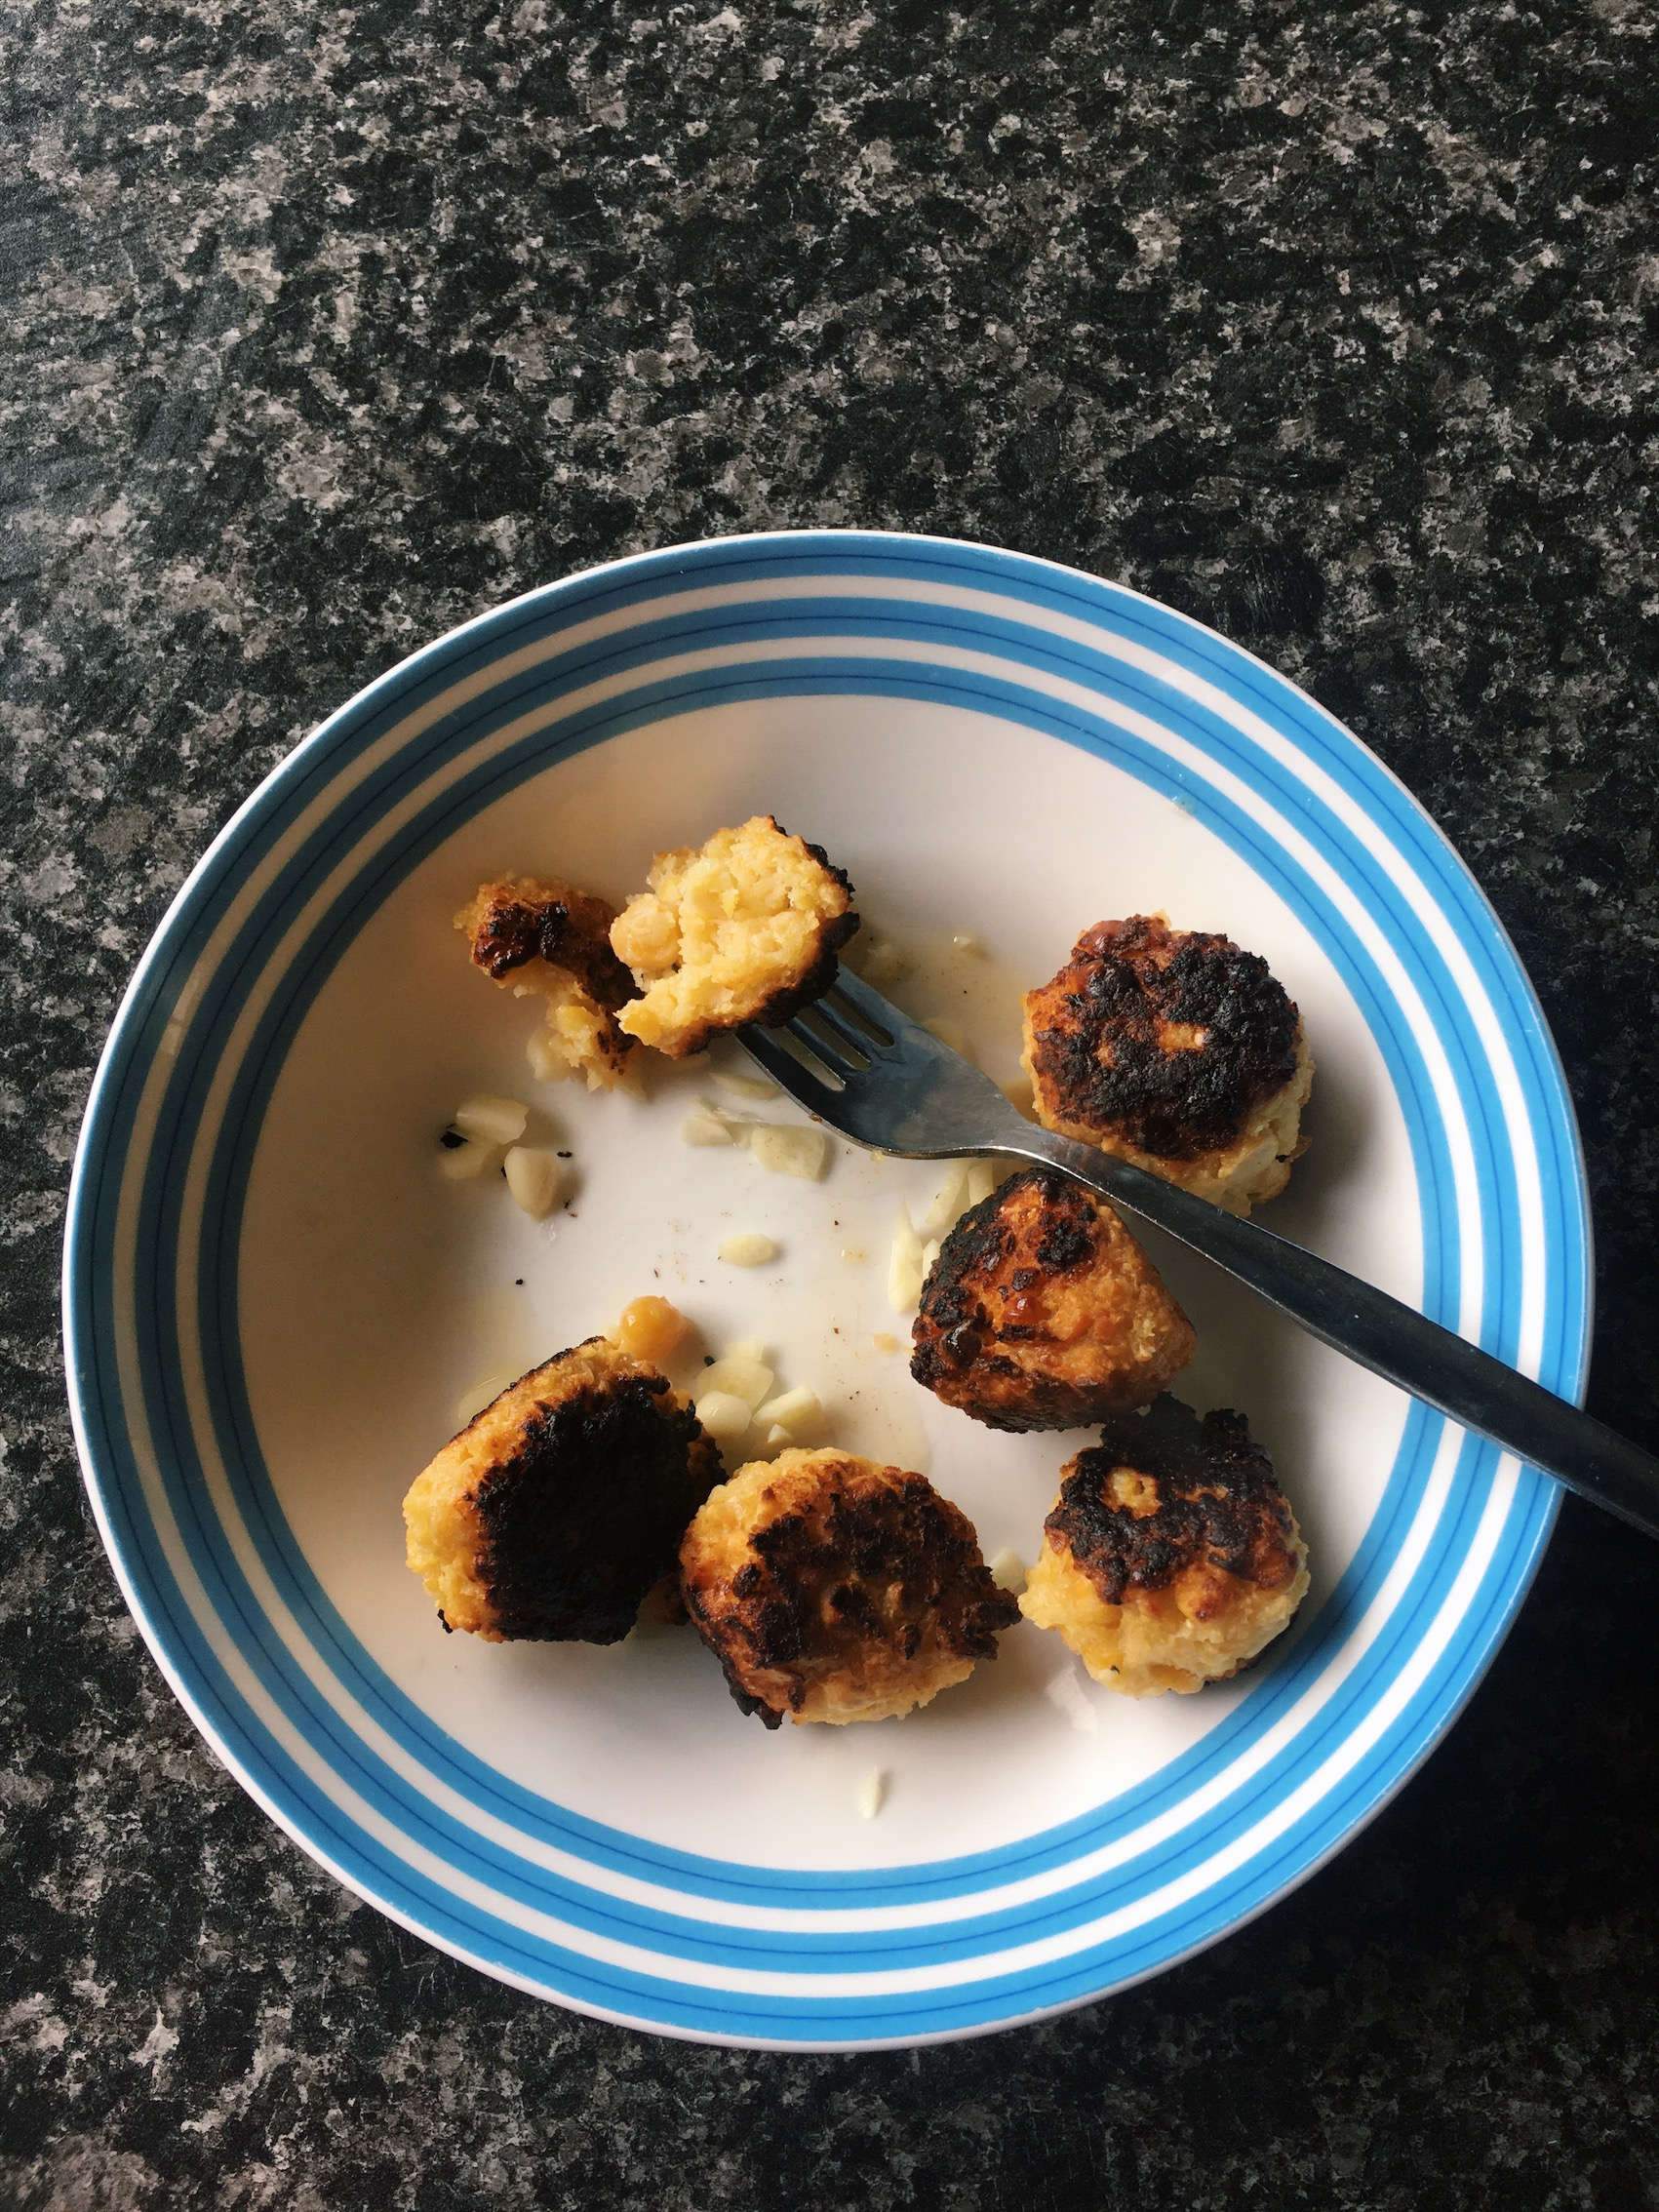 Burnt my chickpeas, no salt or flavouring, but they were INCREDIBLE.